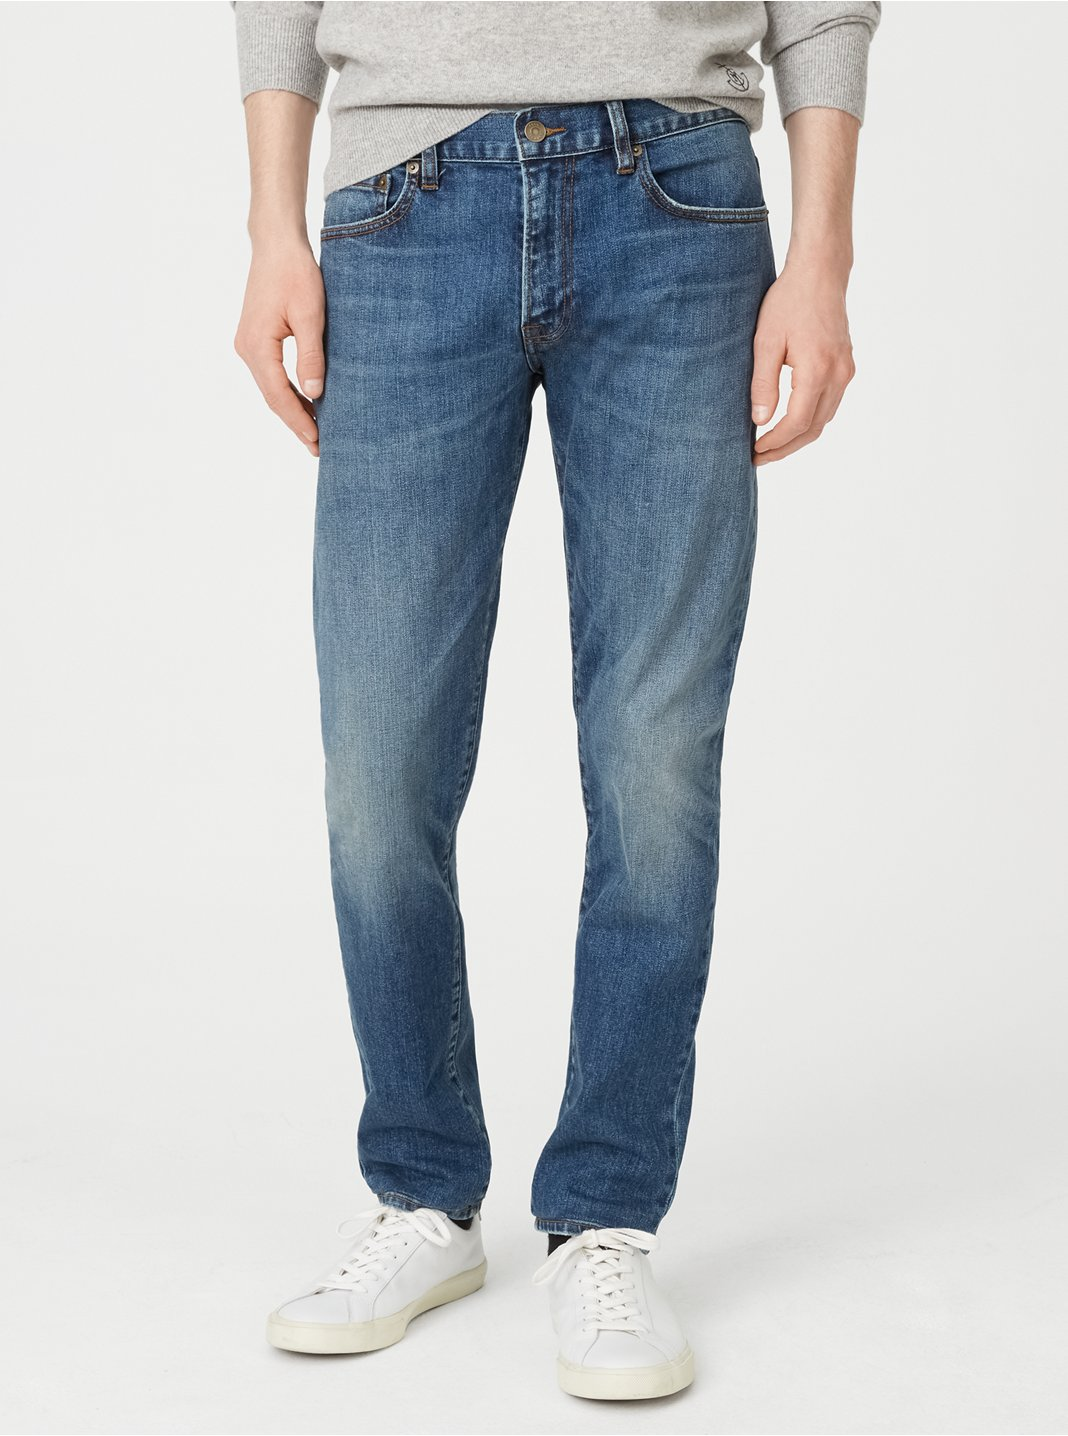 Super Slim Denim